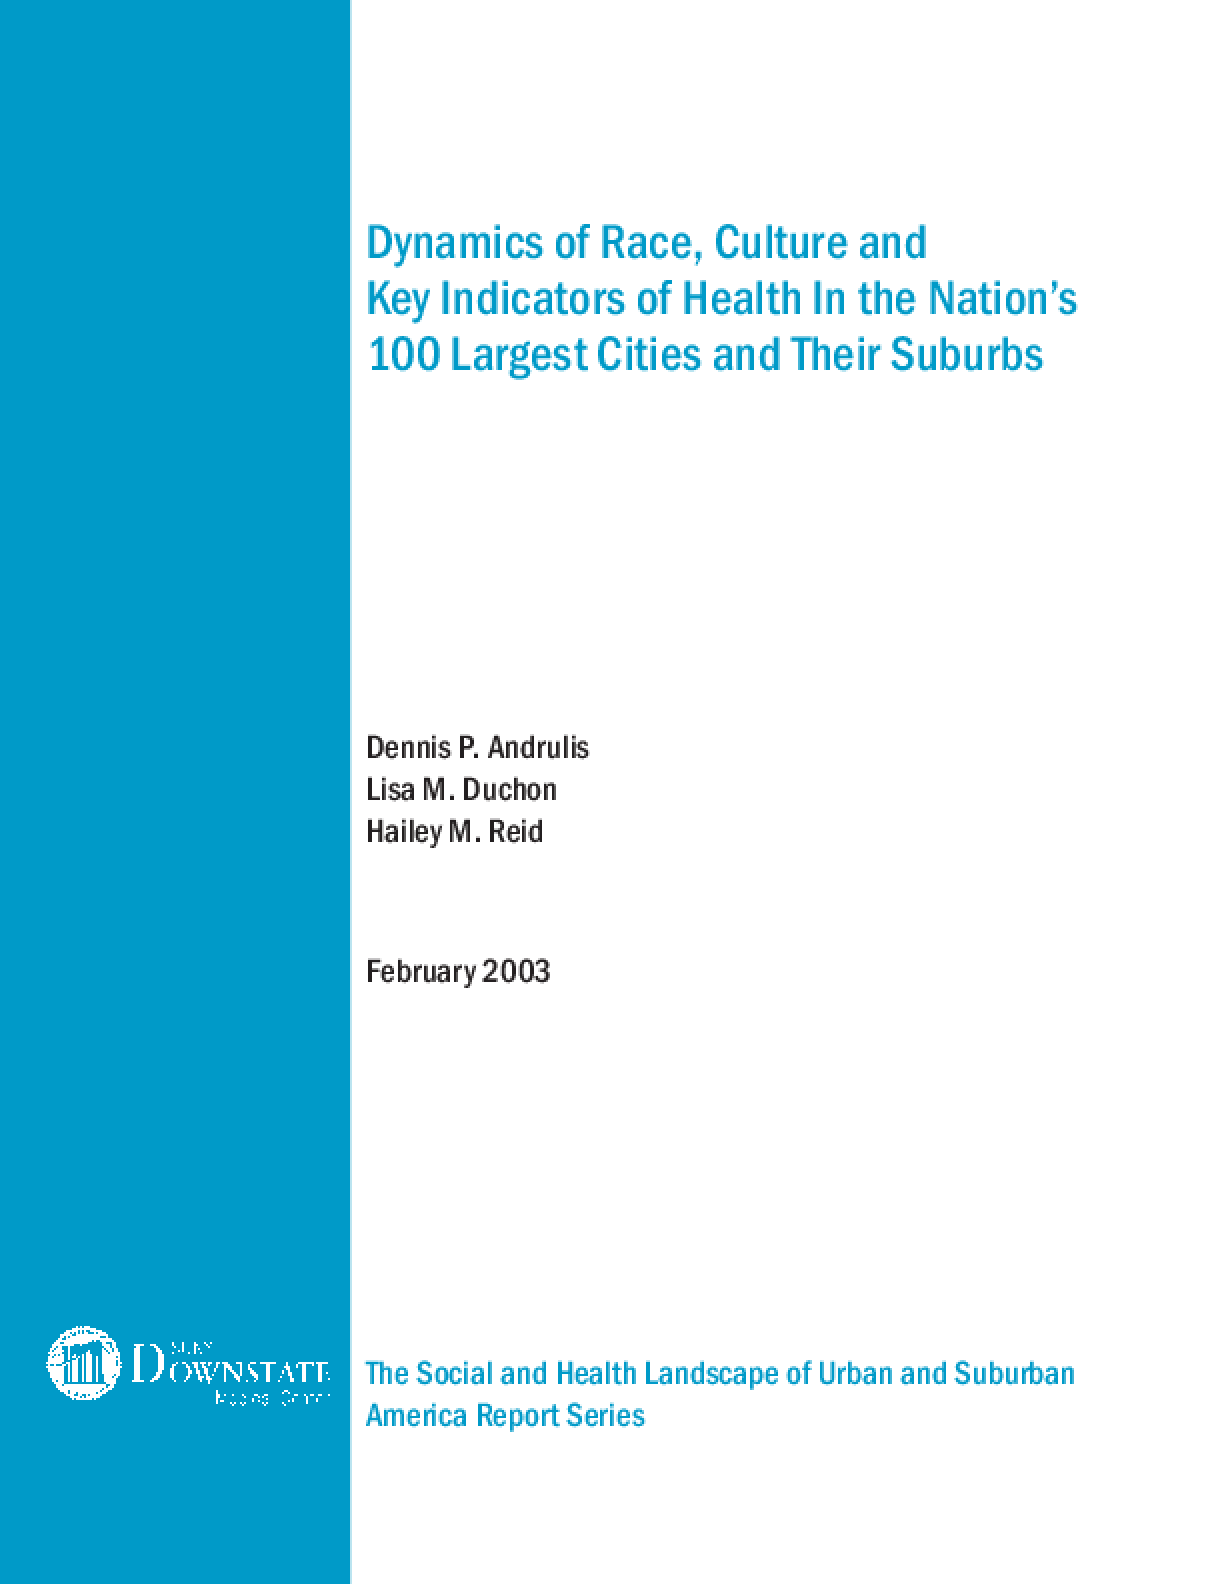 Dynamics of Race, Culture and Key Indicators of Health in the Nation's 100 Largest Cities and Their Suburbs